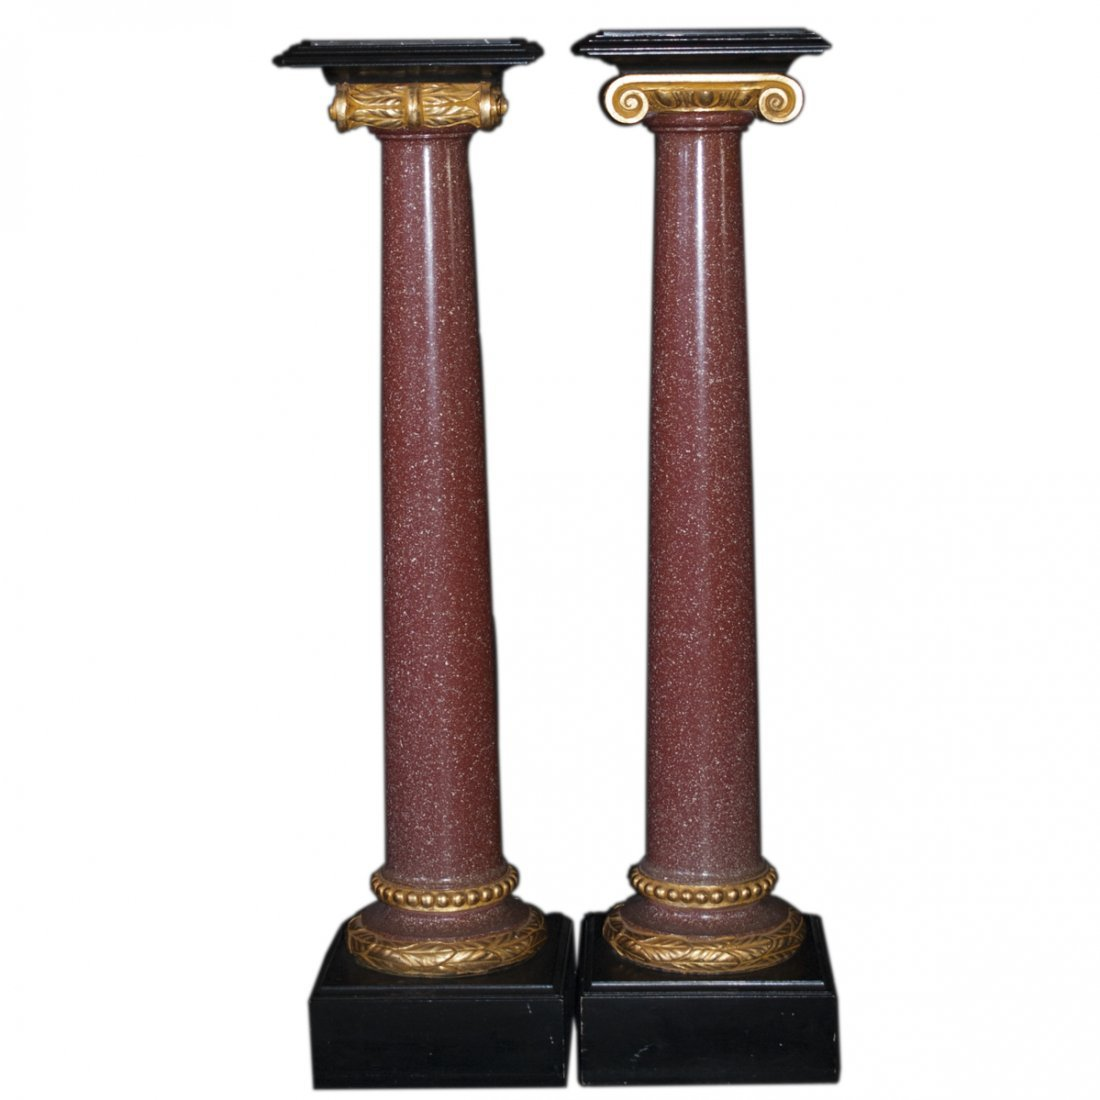 Marble Gilded Wood & Composite Pedestals